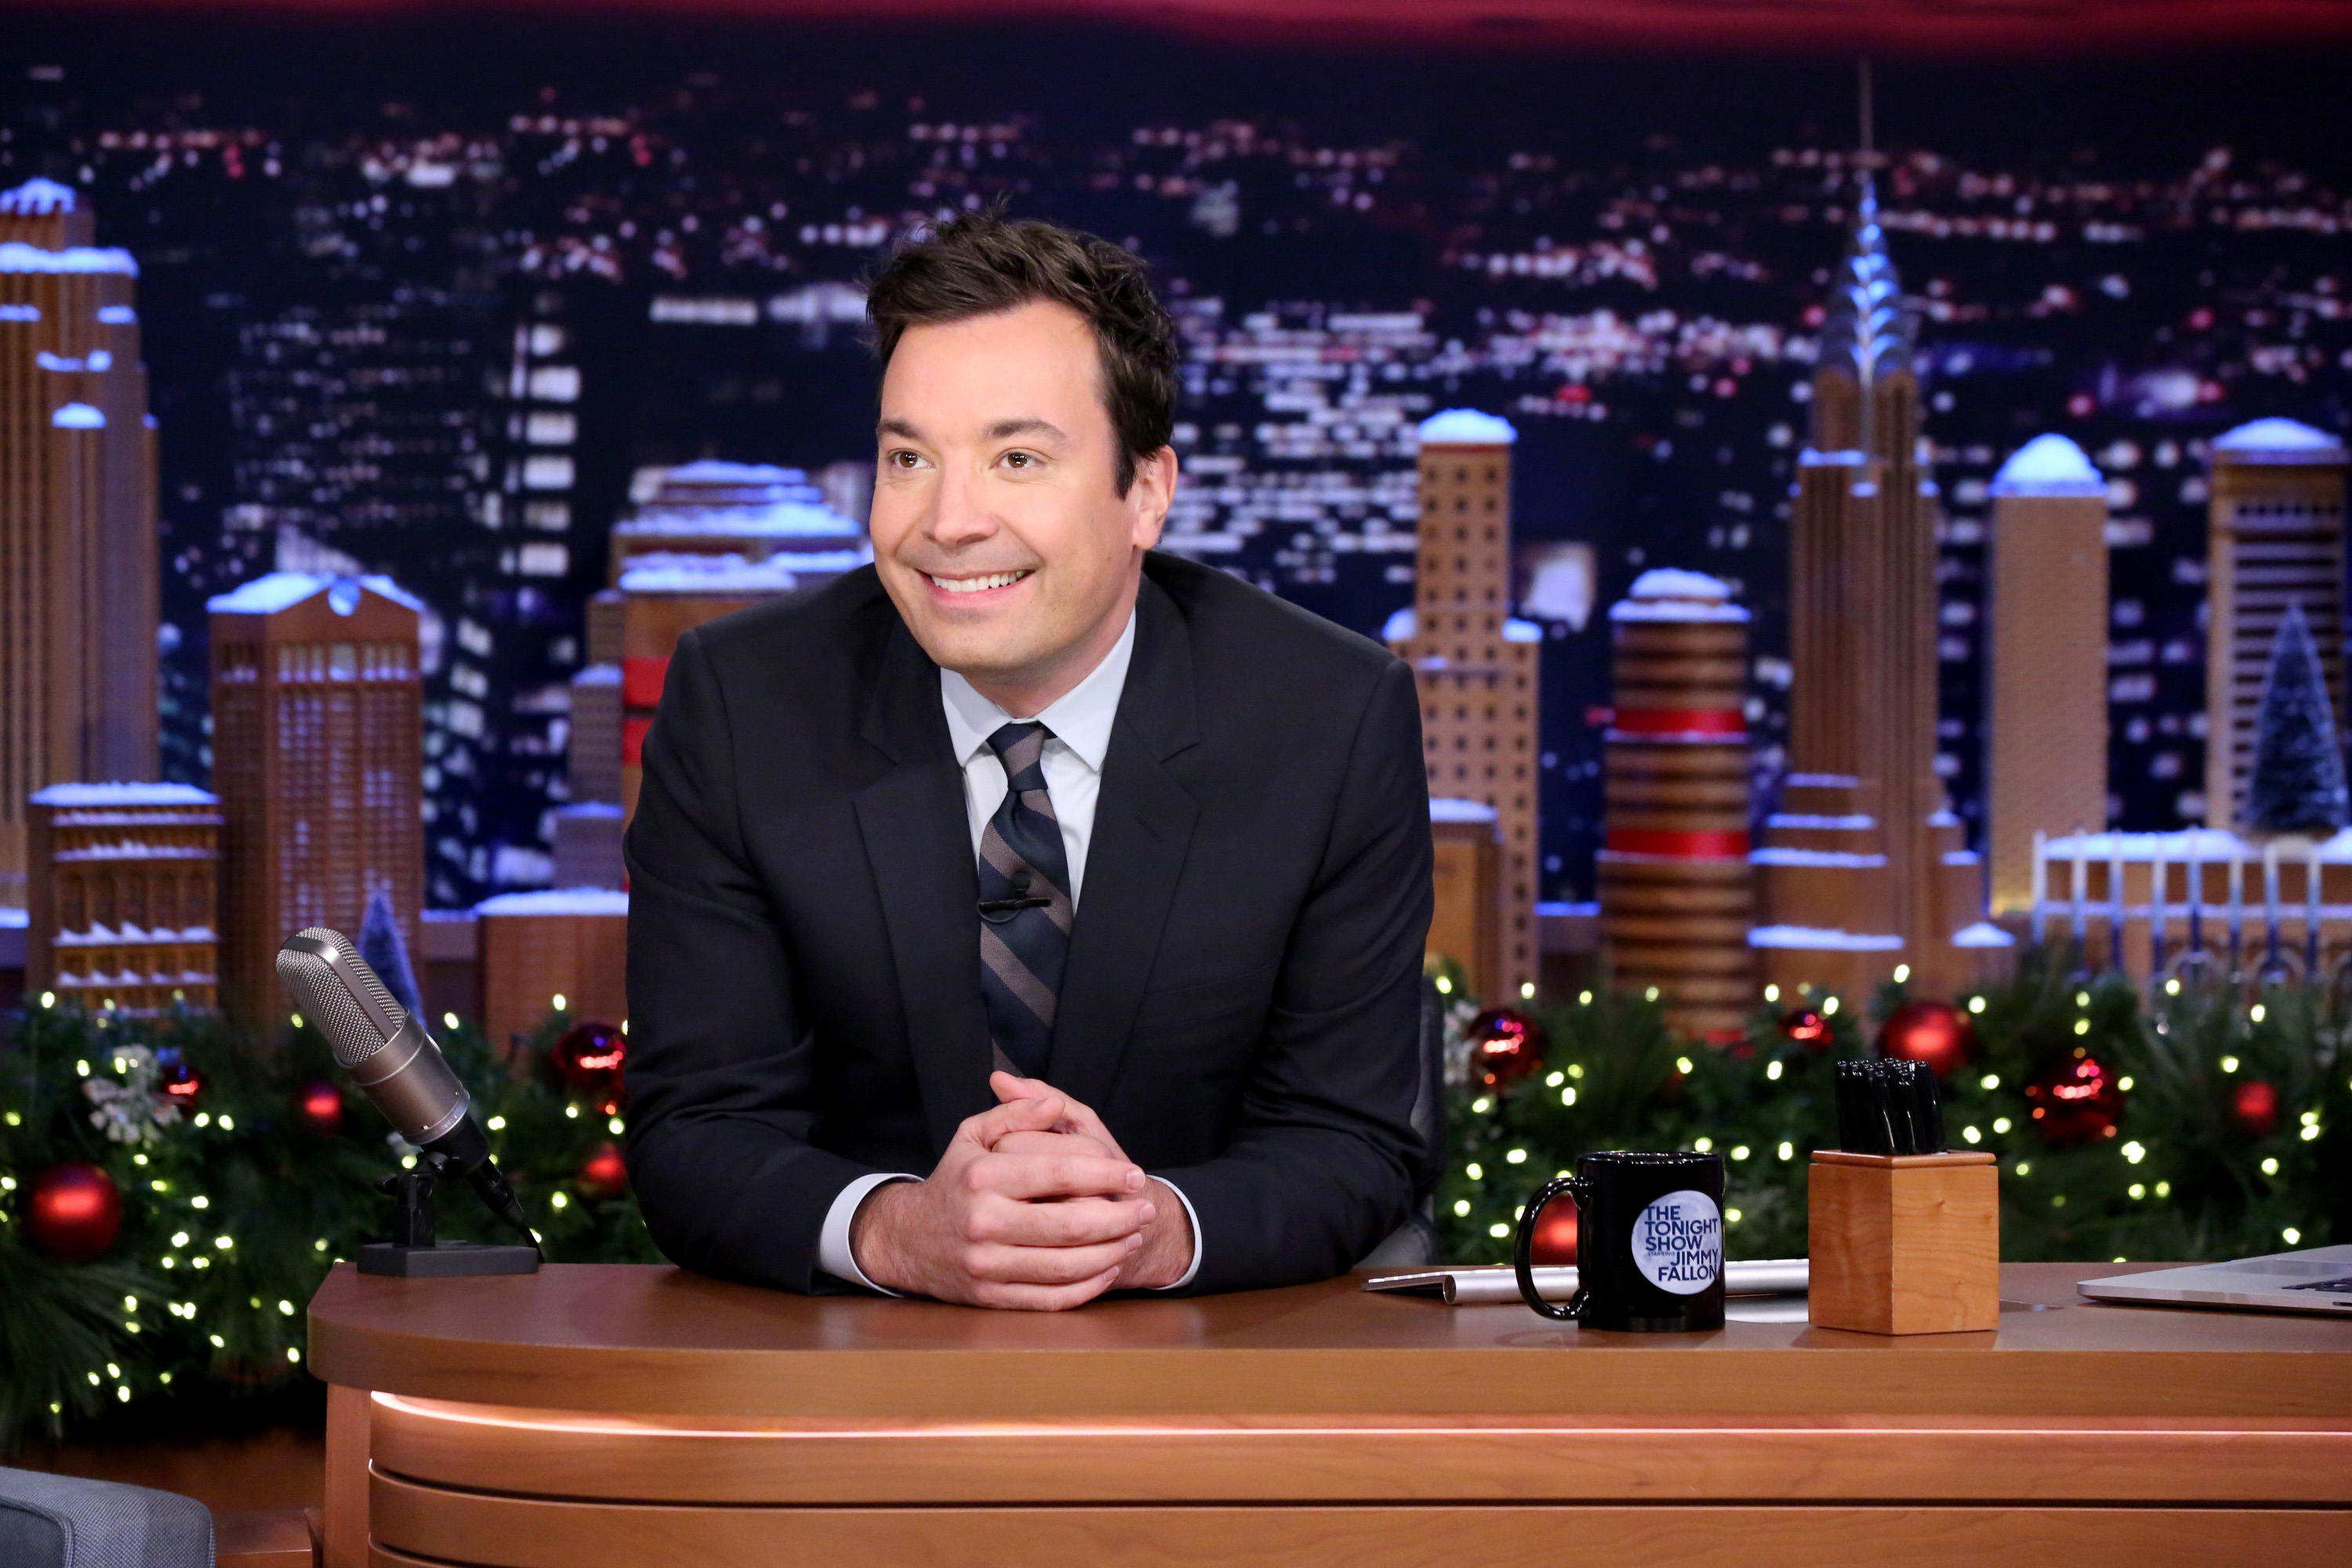 'The Tonight Show' host Jimmy Fallon on Dec. 15, 2015.